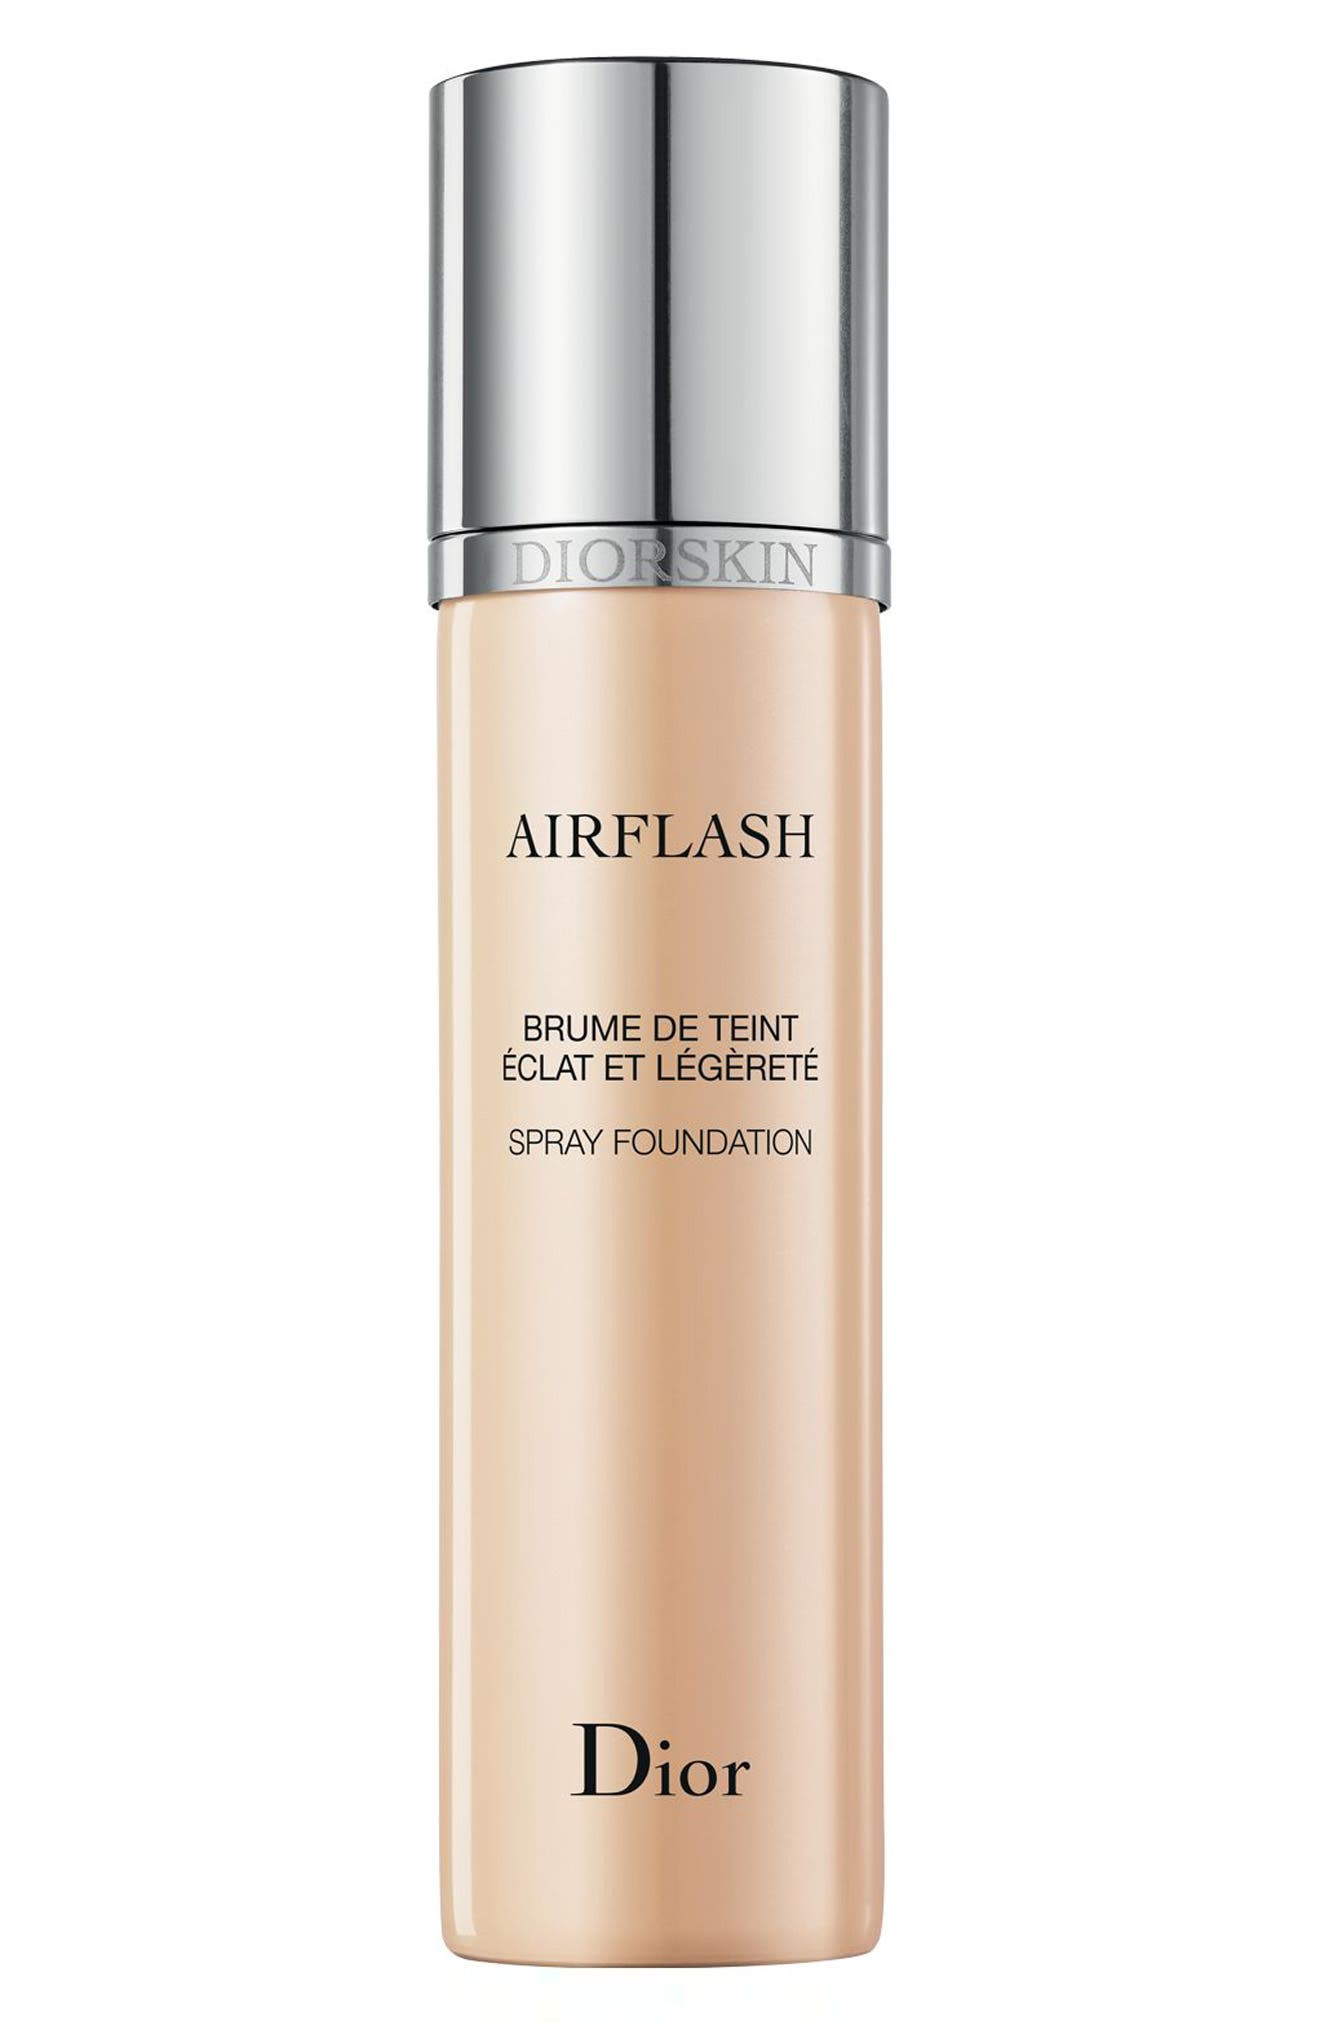 'Diorskin Airflash' Spray Foundation,                             Alternate thumbnail 2, color,                             000